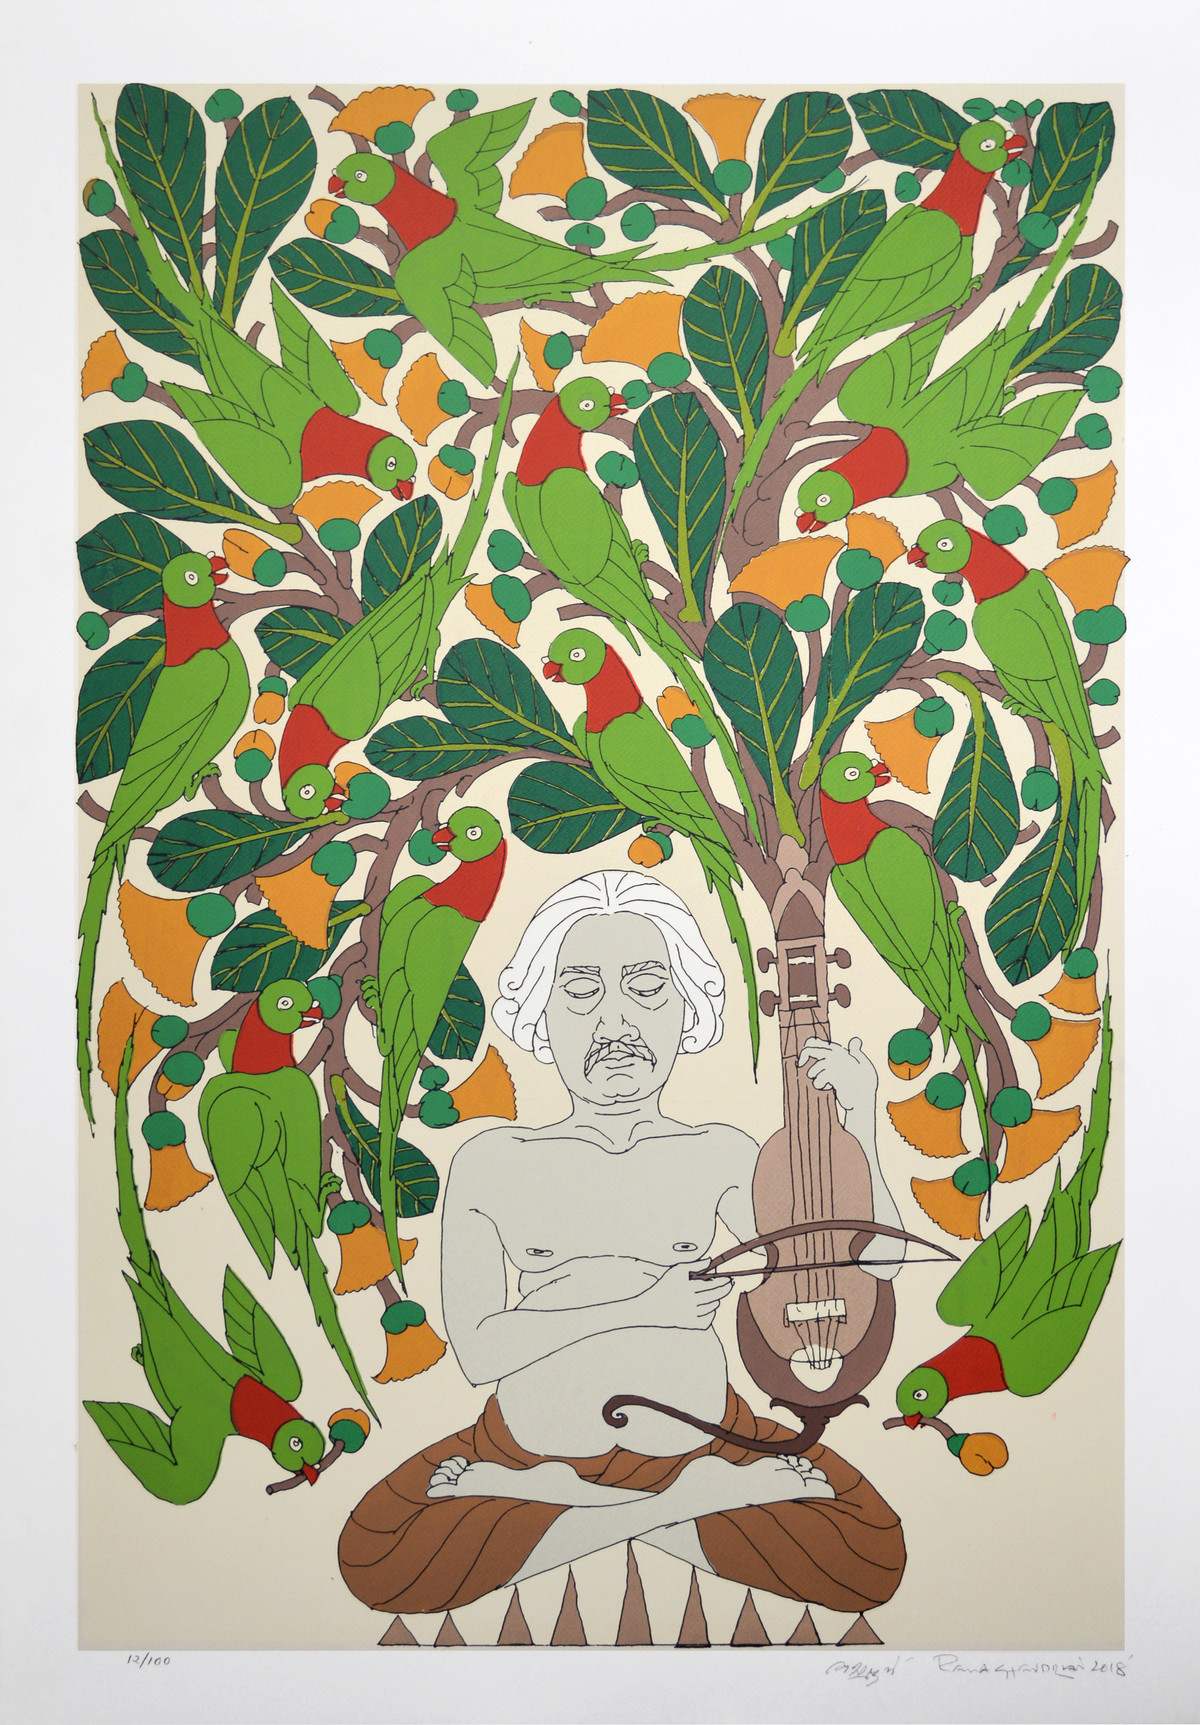 Untitled by A Ramachandran, Decorative Serigraph, Serigraph on Paper, Westar color